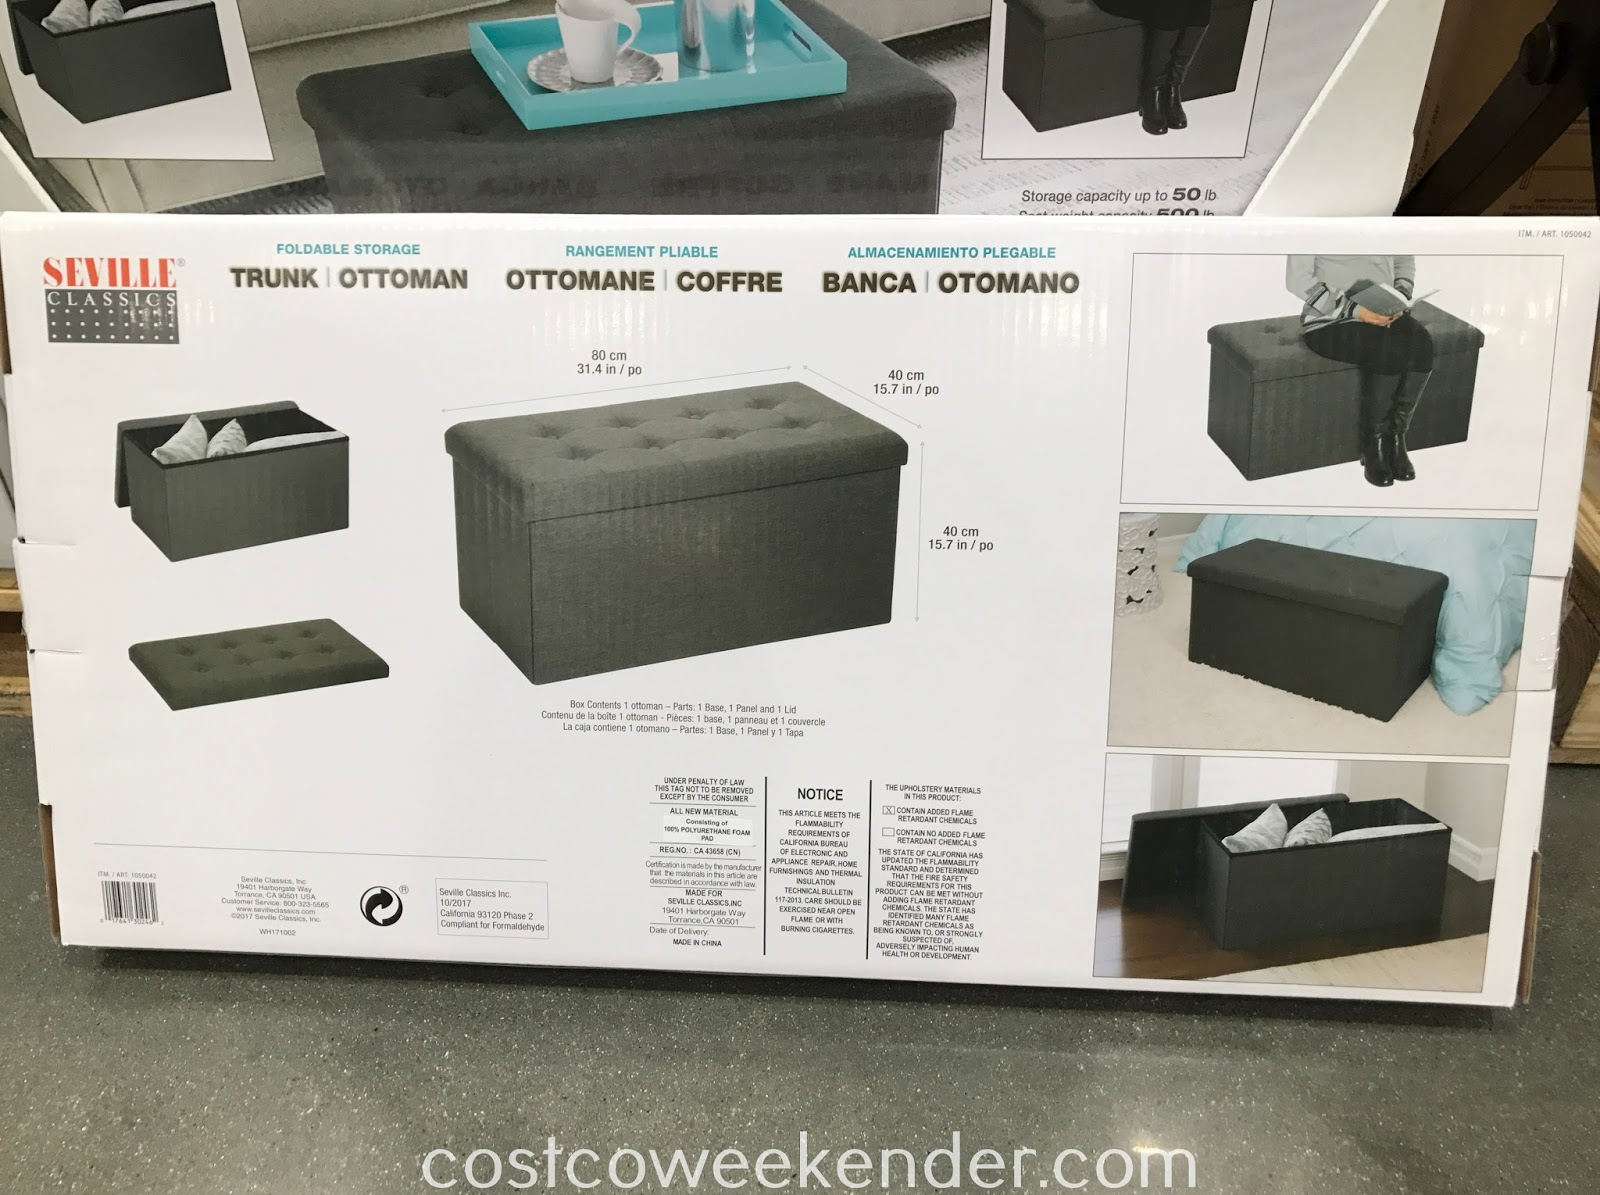 Costco 1050042 - Easily add seating to any room with the Seville Classics Foldable Fabric Storage Bench